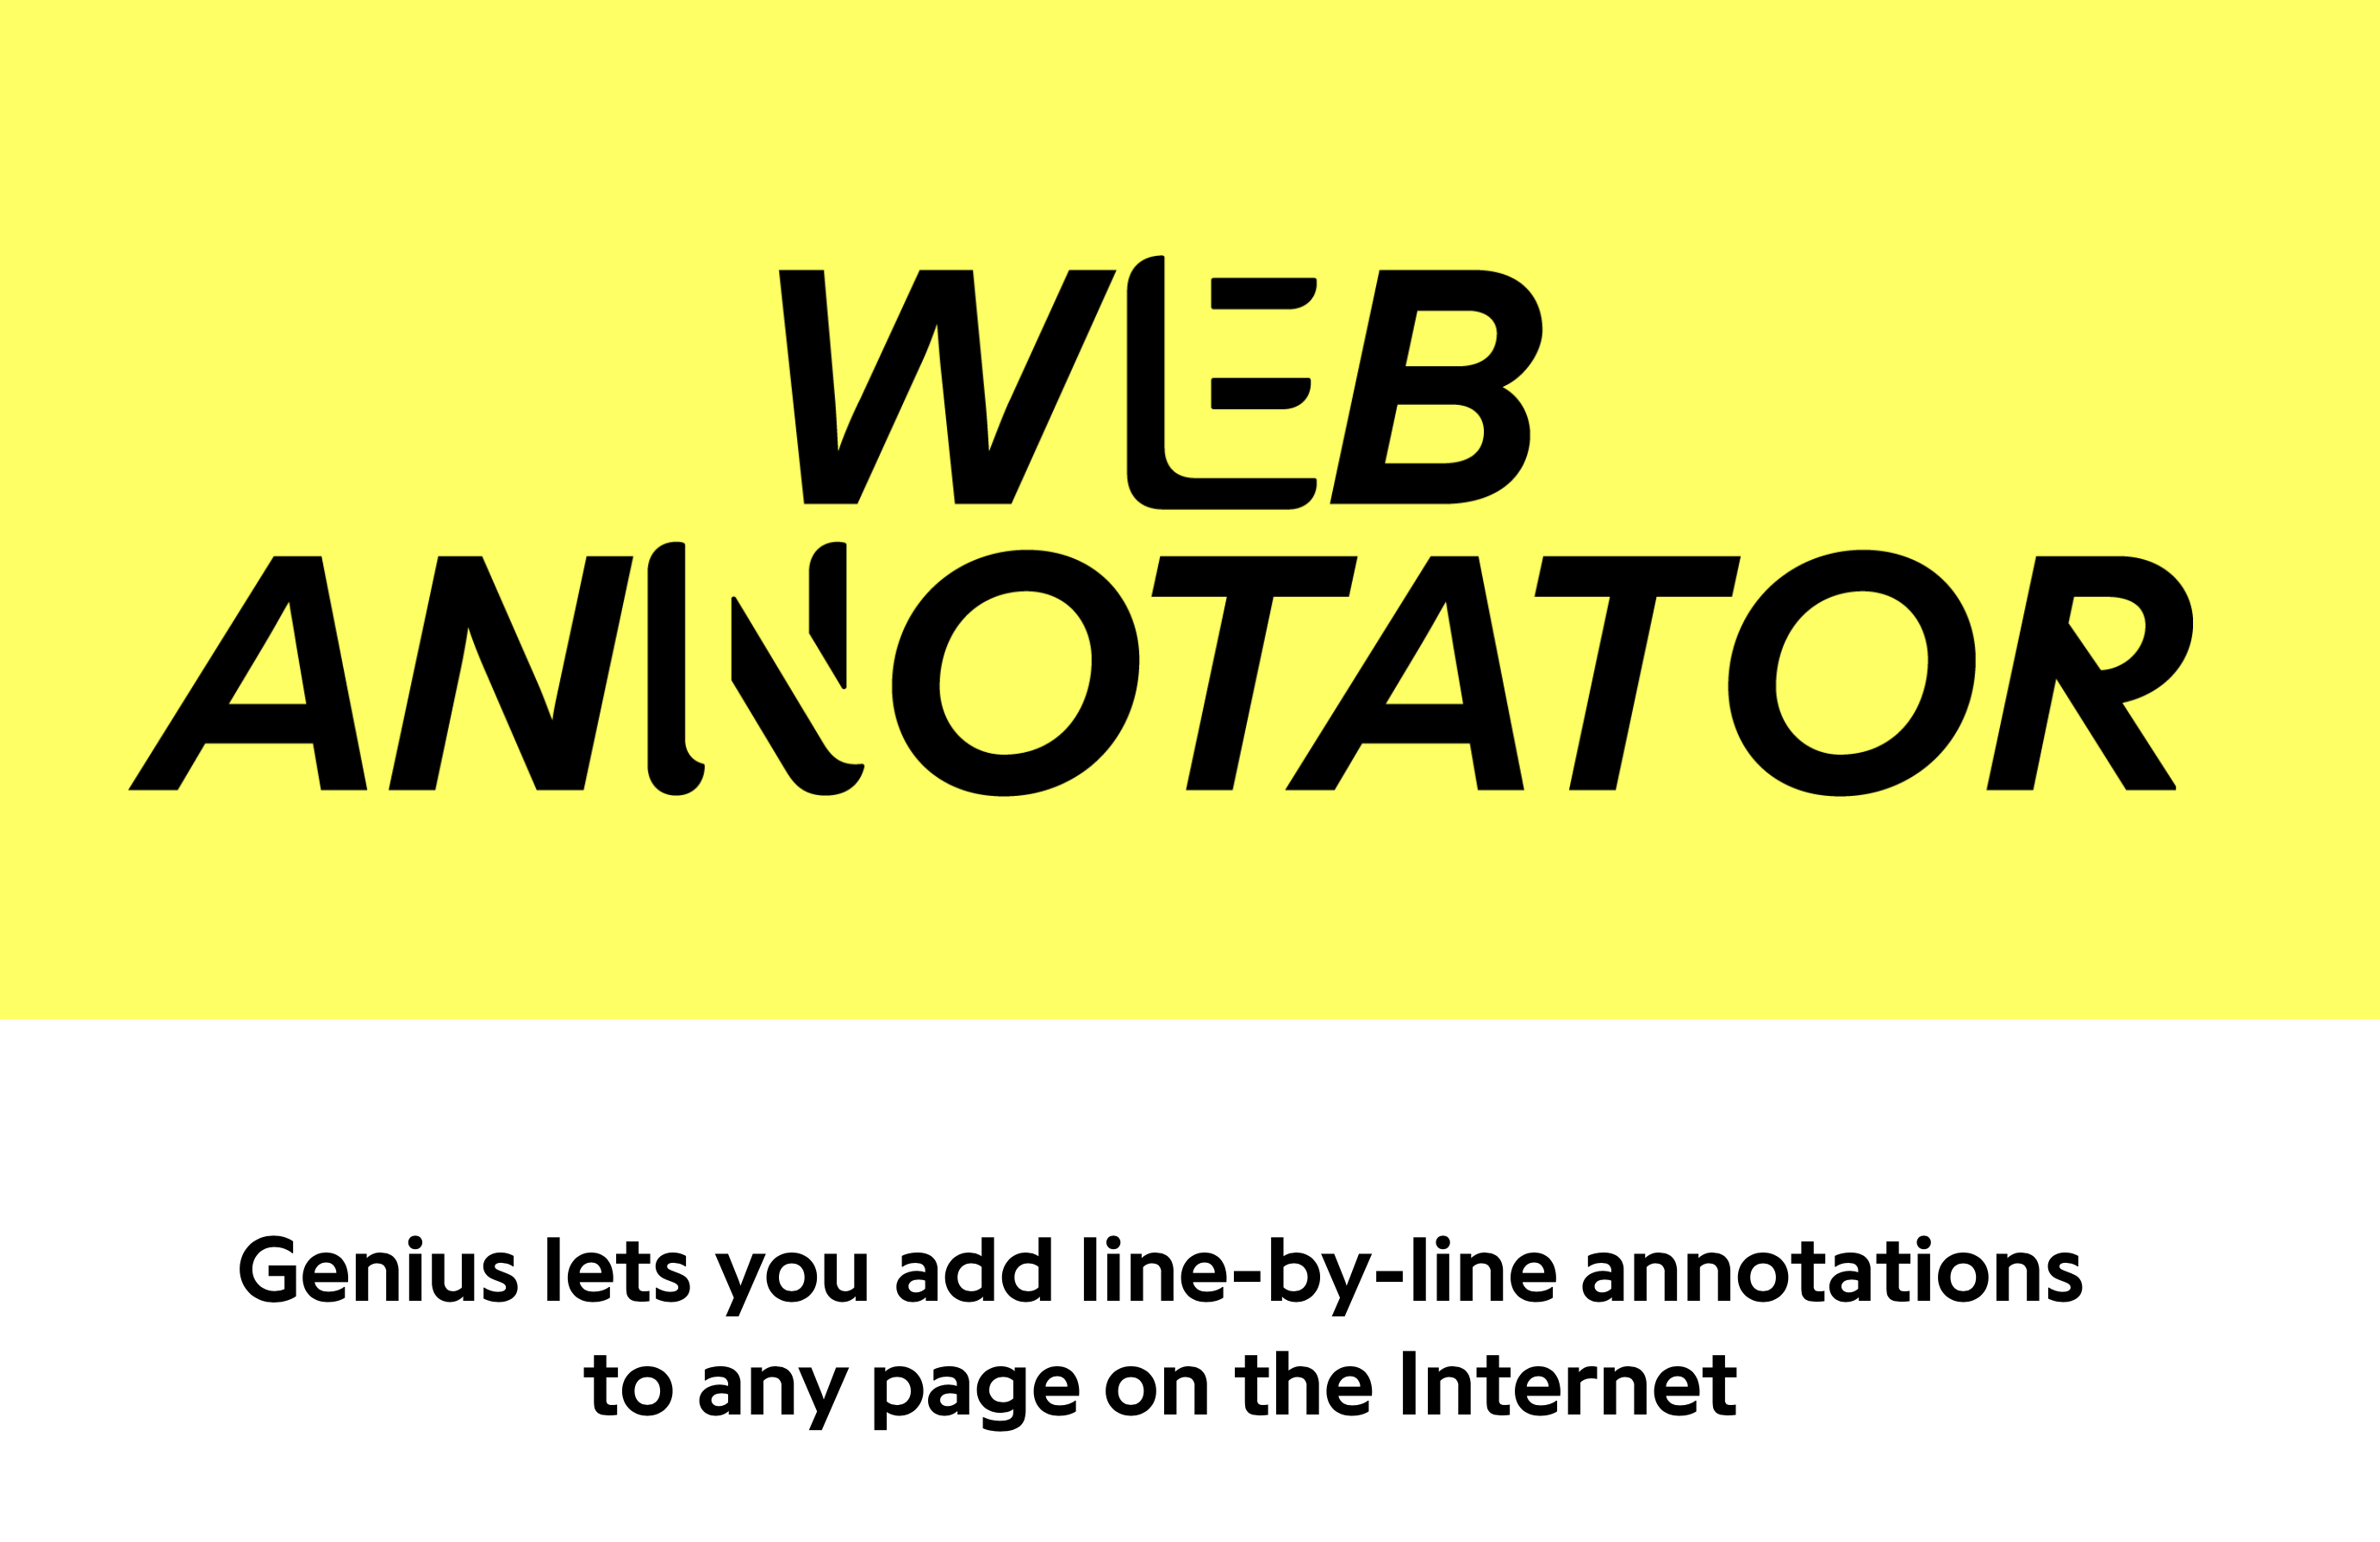 https://http://genius.com/web-annotator